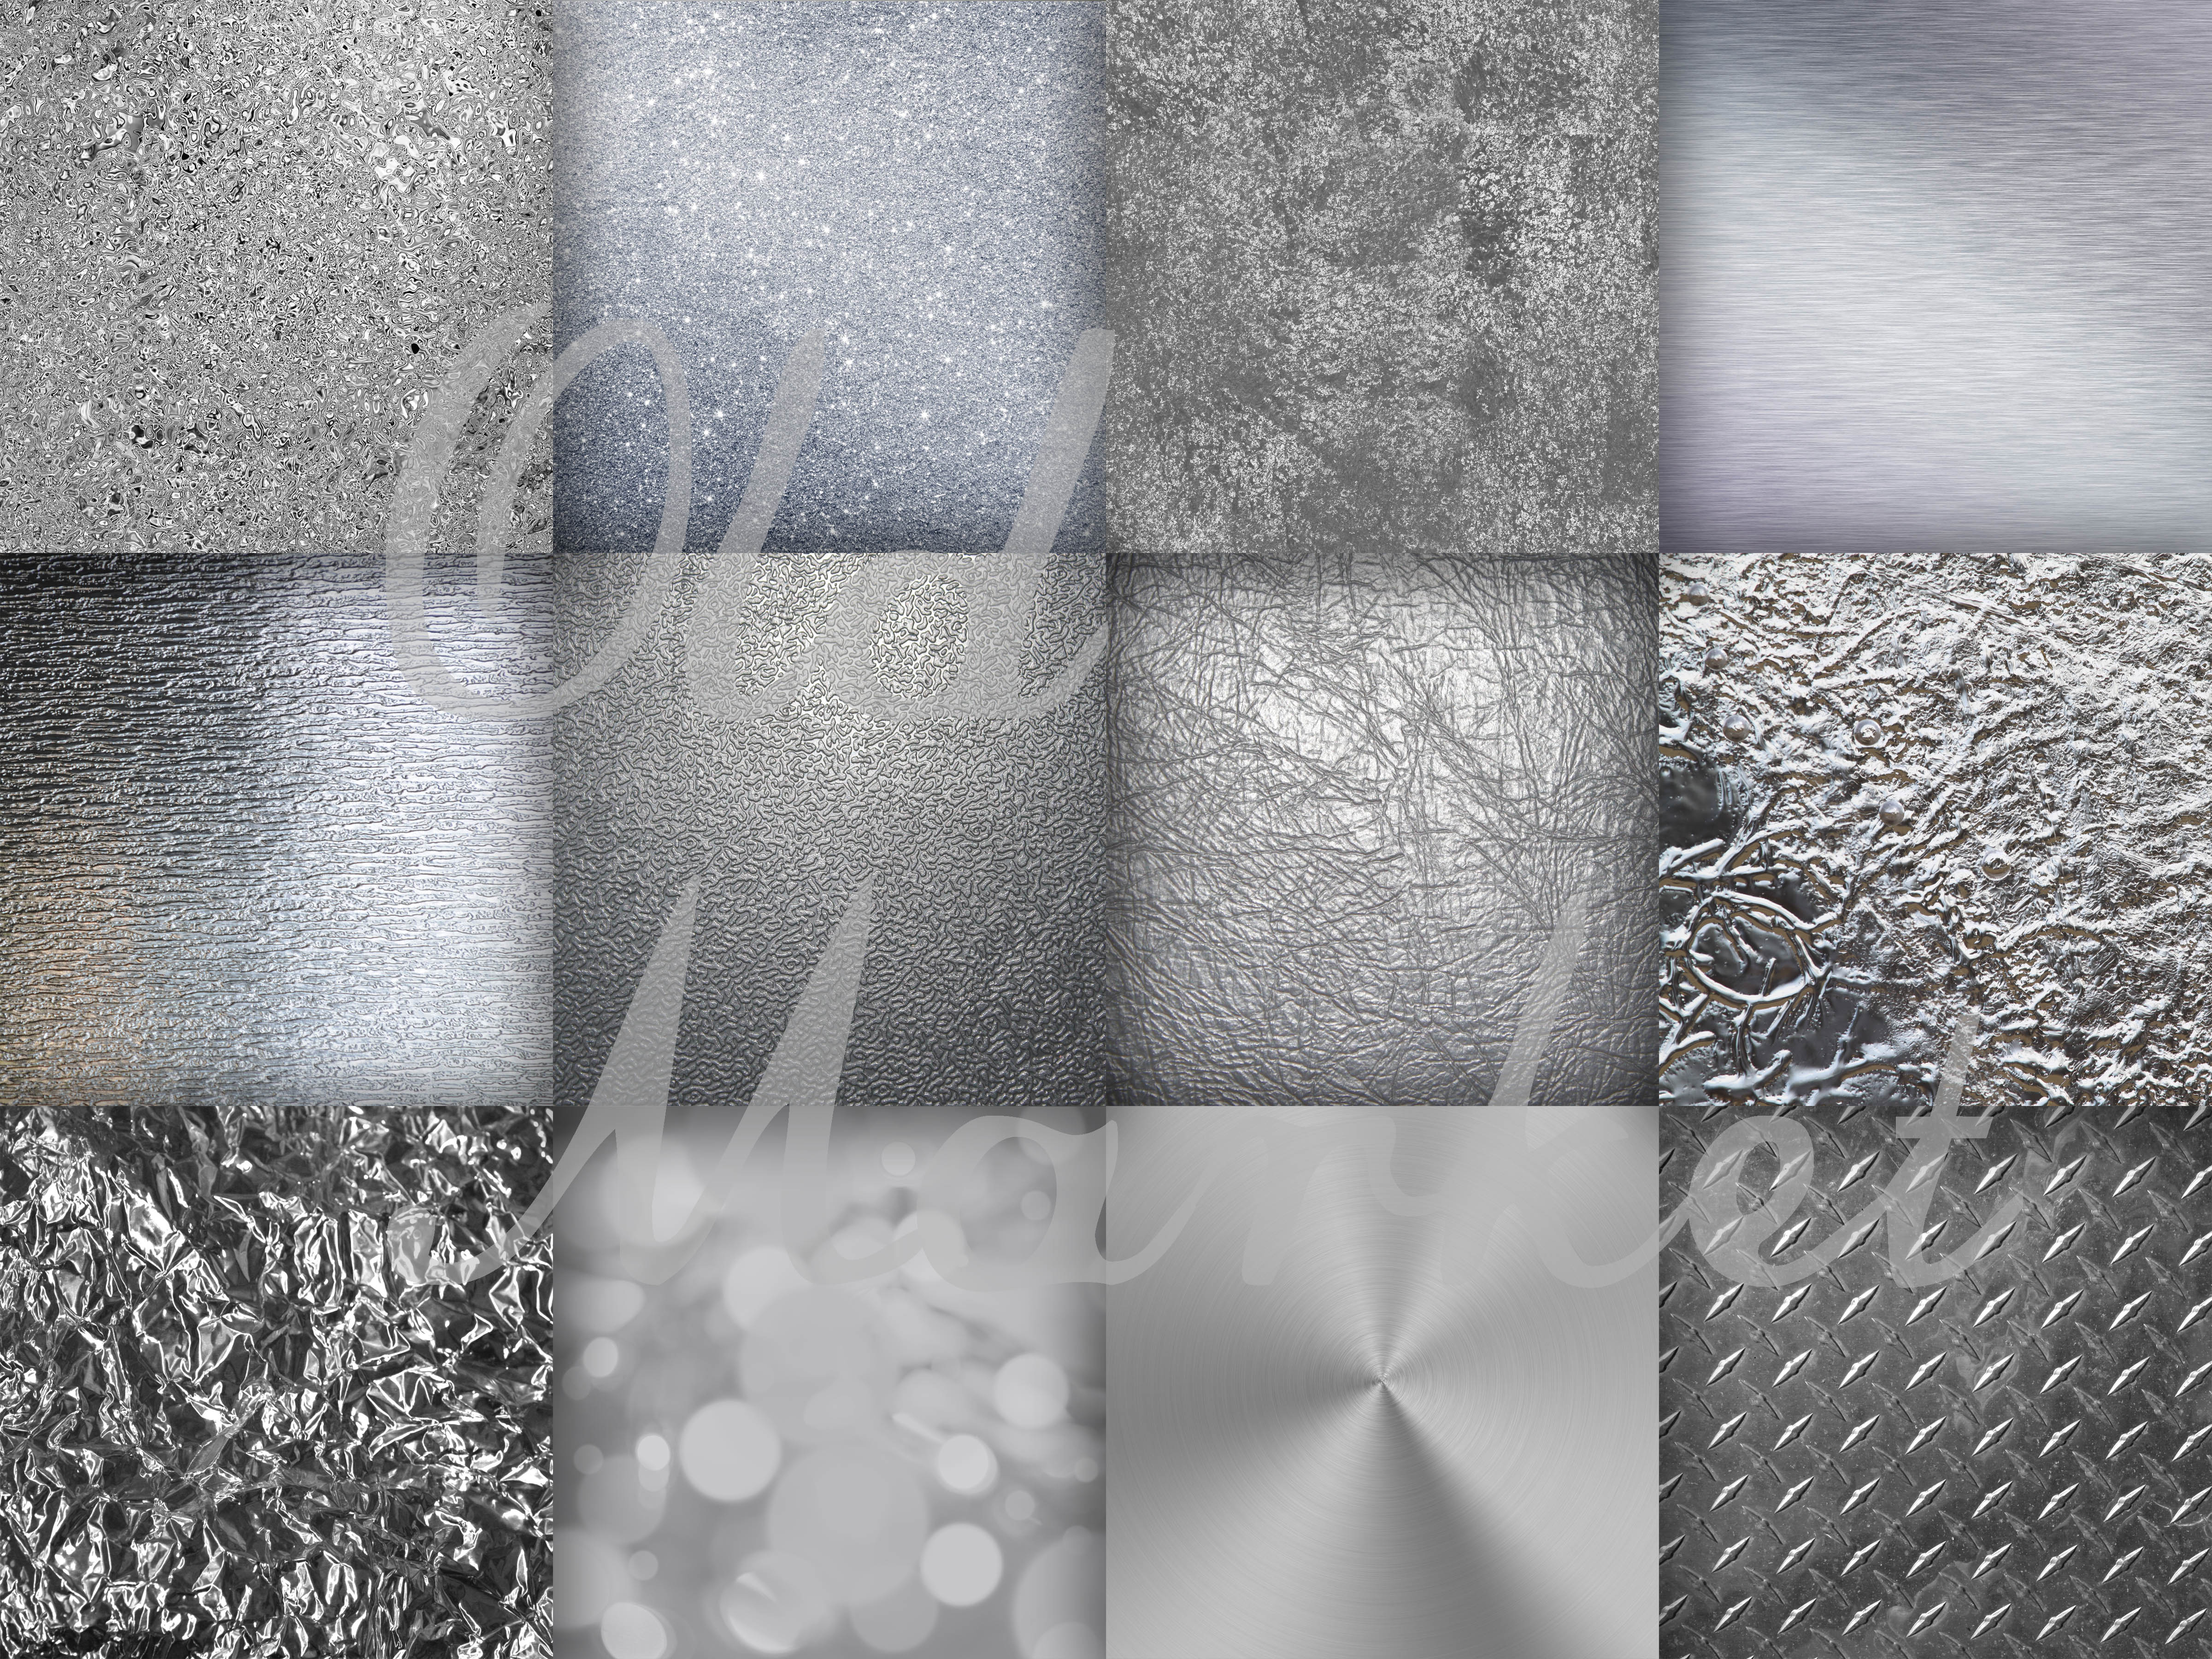 Silver Streak - Silver Digital Paper Textures Graphic Textures By oldmarketdesigns - Image 2